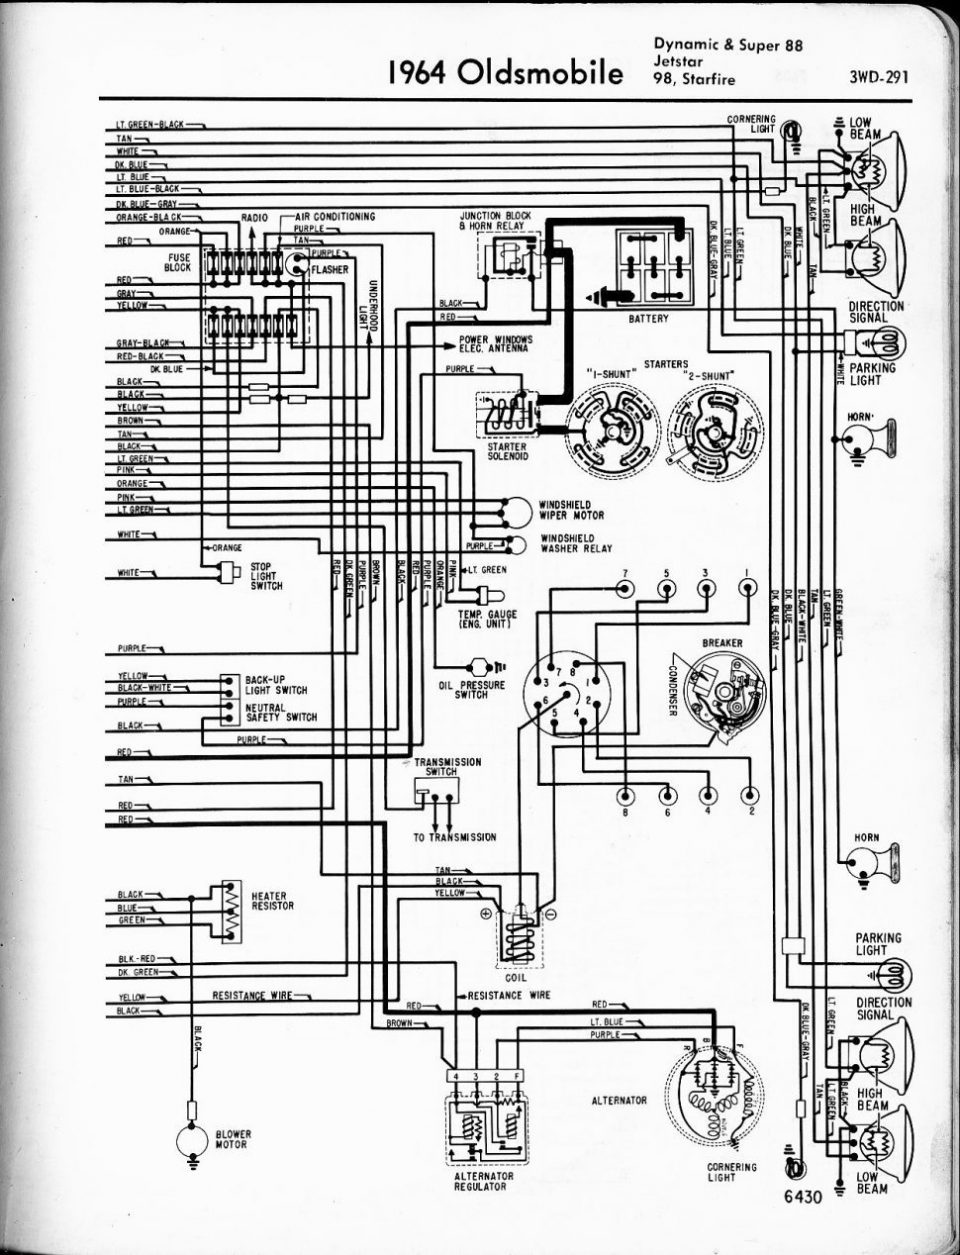 Solar Panel Drawing At Free For Personal Use Pv Cell Wiring Diagram 960x1255 Diy System Pdf Electrical Sample